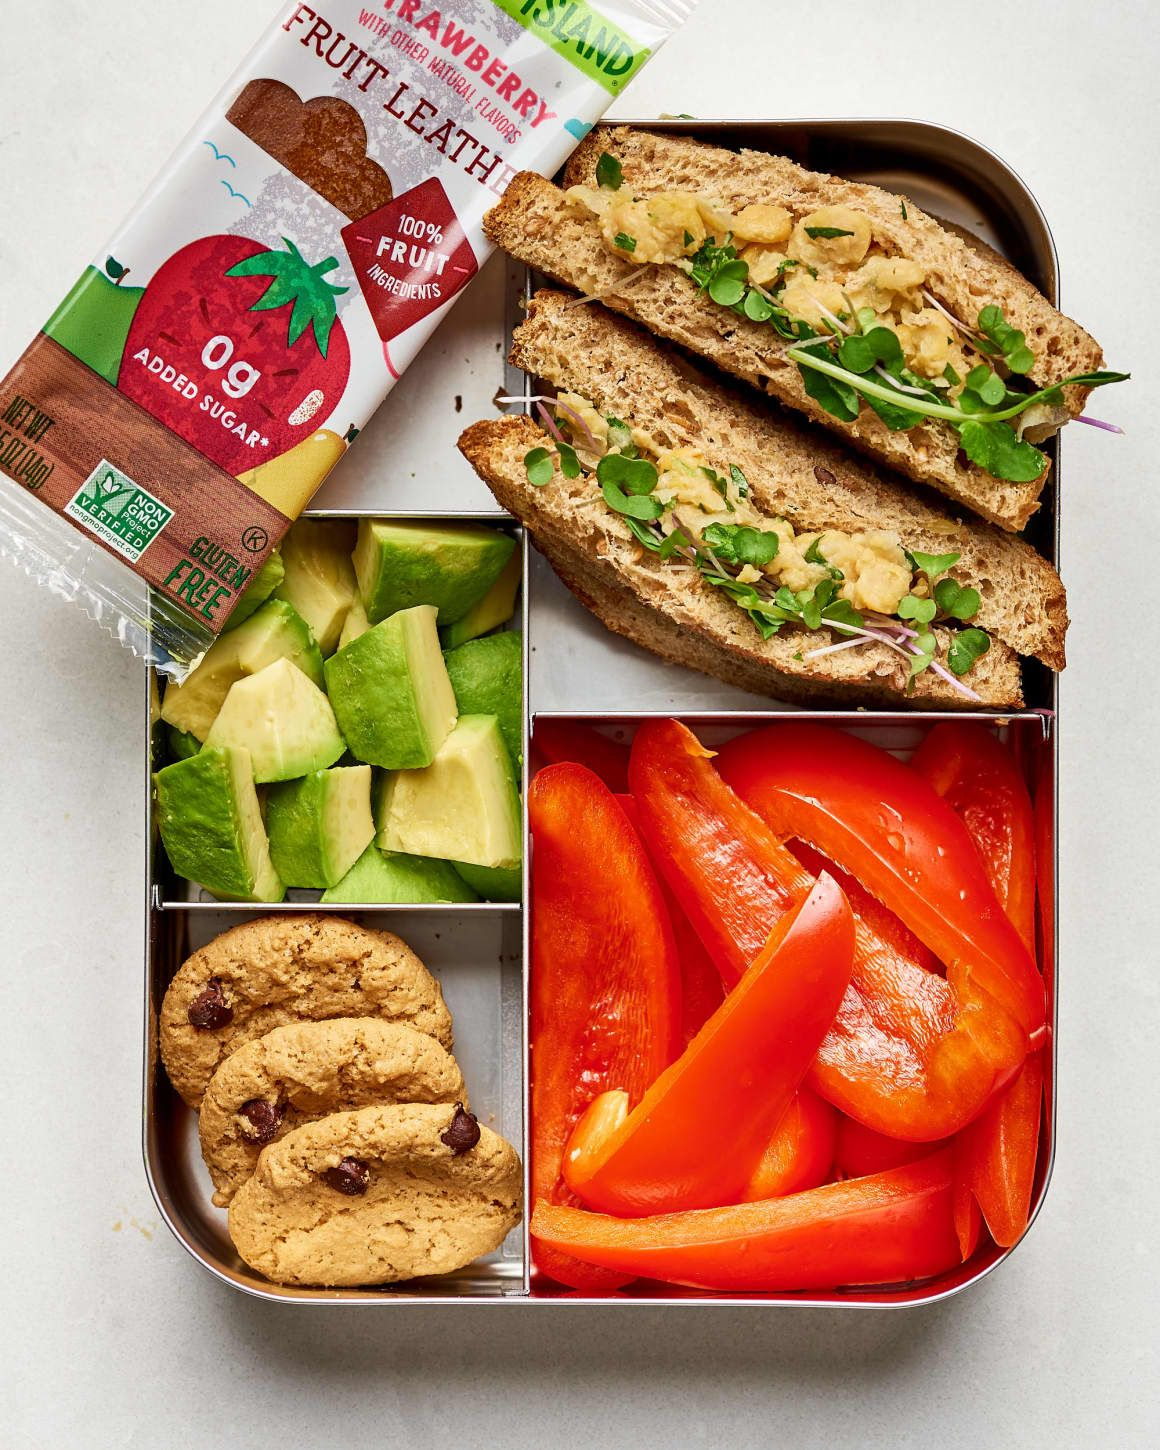 Vegan Recipes For Lunch Box